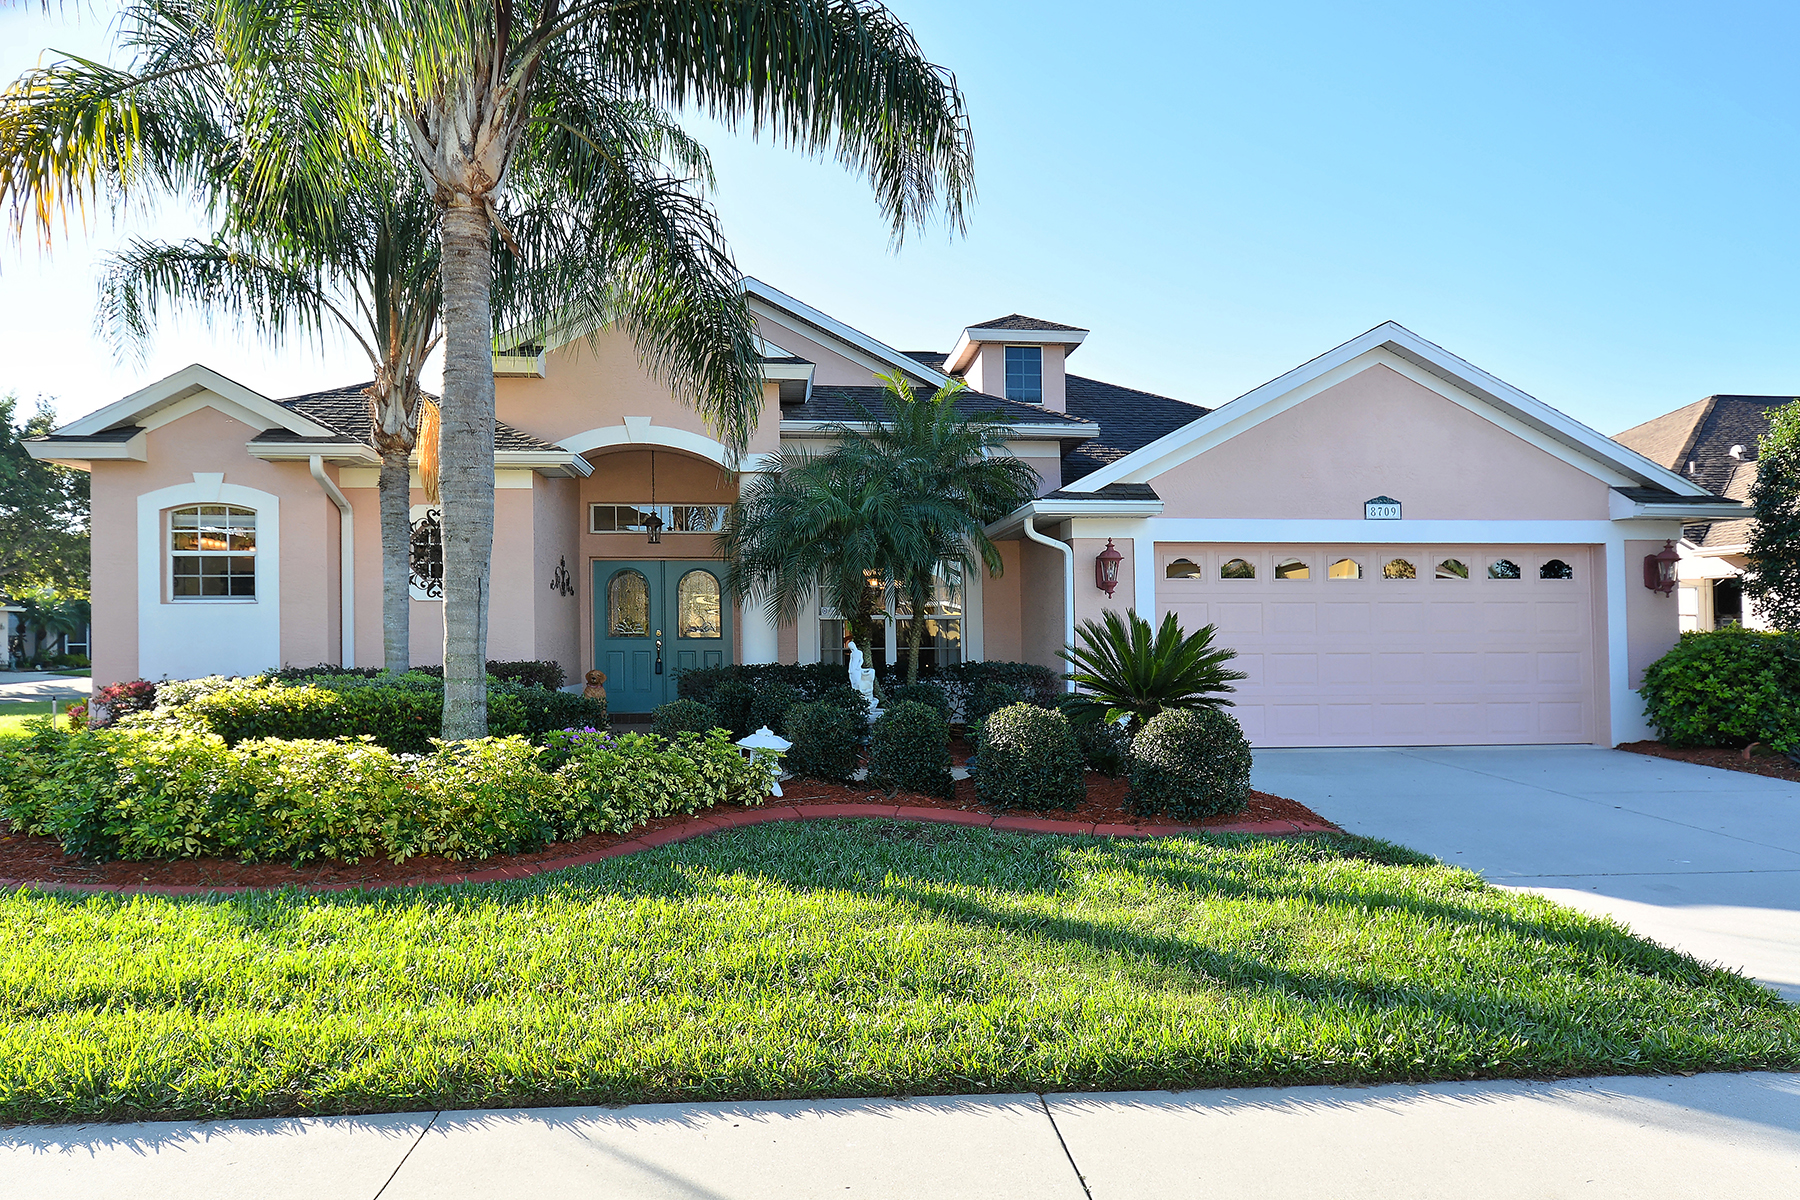 Single Family Home for Sale at PARKWOOD VILLAS 8709 29th St E Parrish, Florida 34219 United States